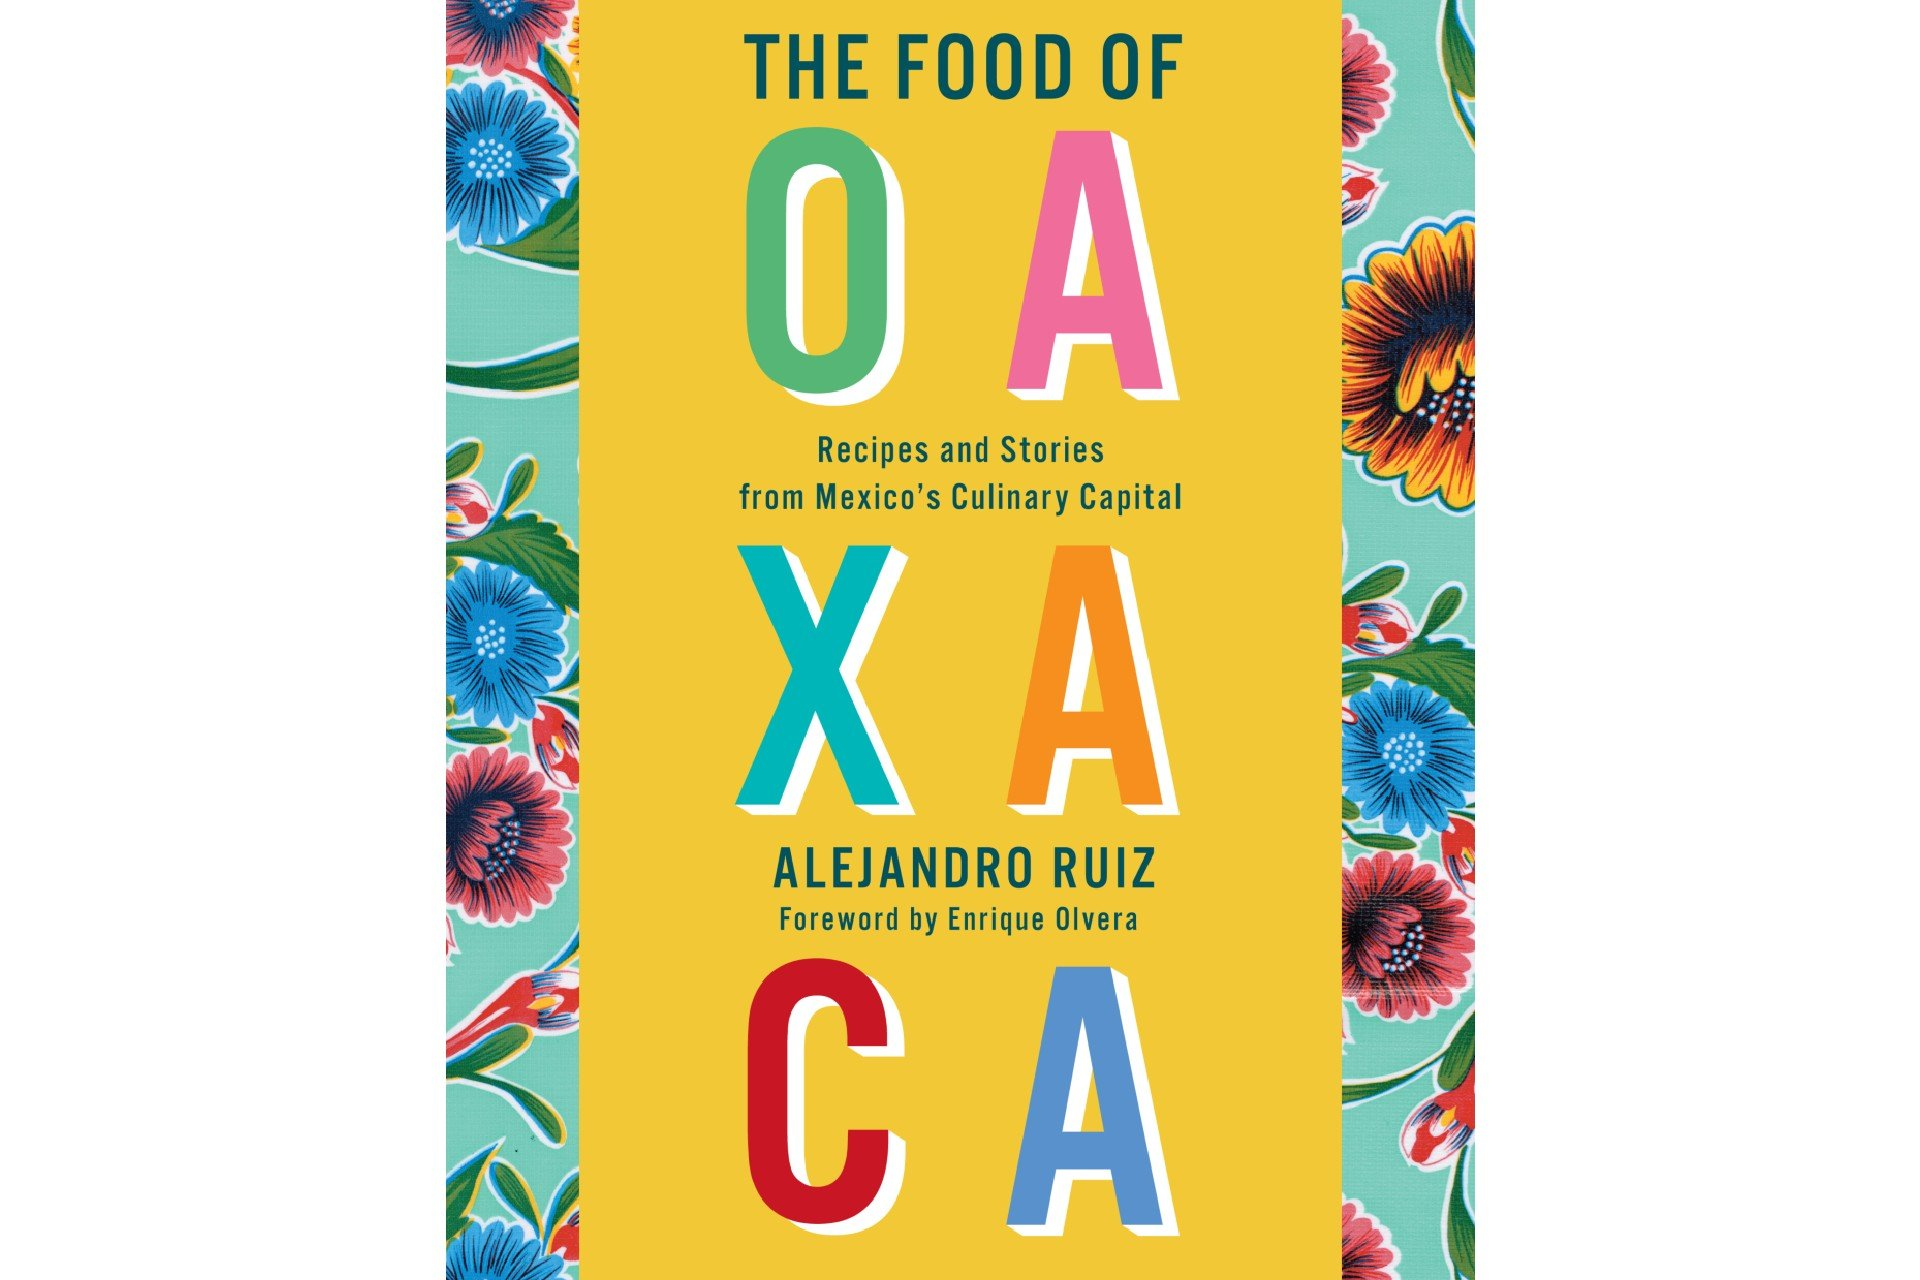 The Food of Oaxaca